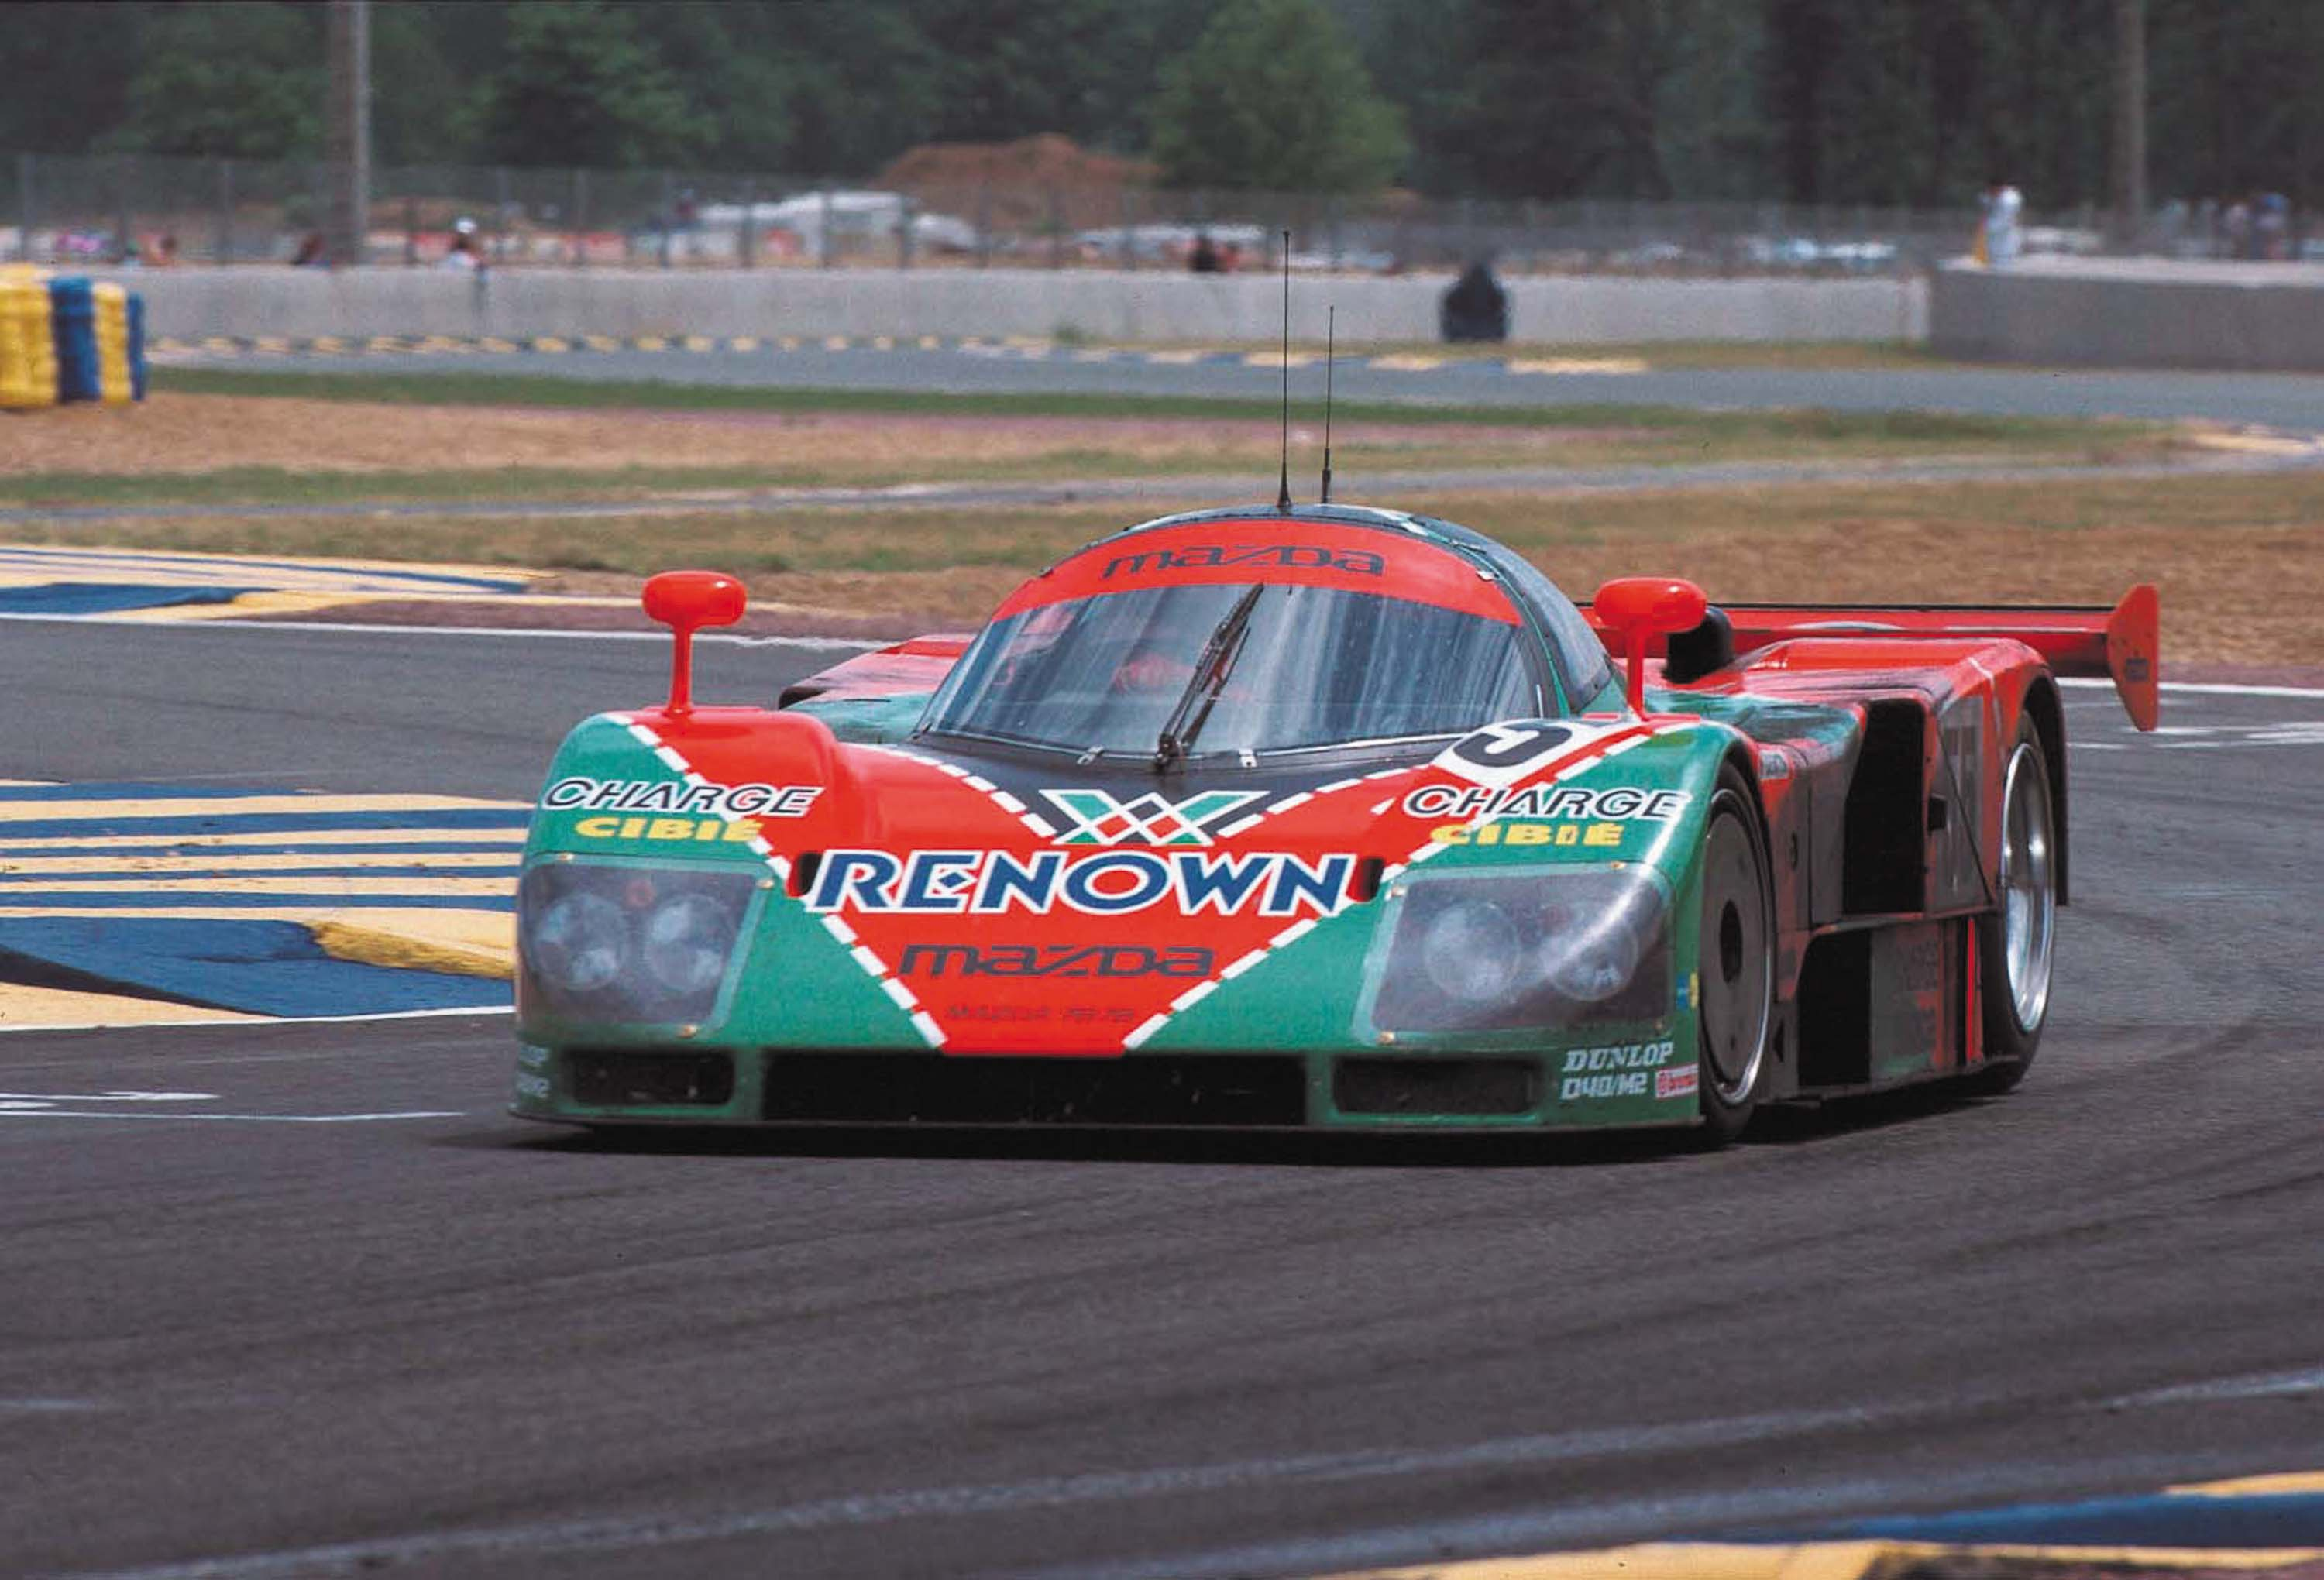 1991 mazda 787b le mans race car photo gallery between the axles. Black Bedroom Furniture Sets. Home Design Ideas